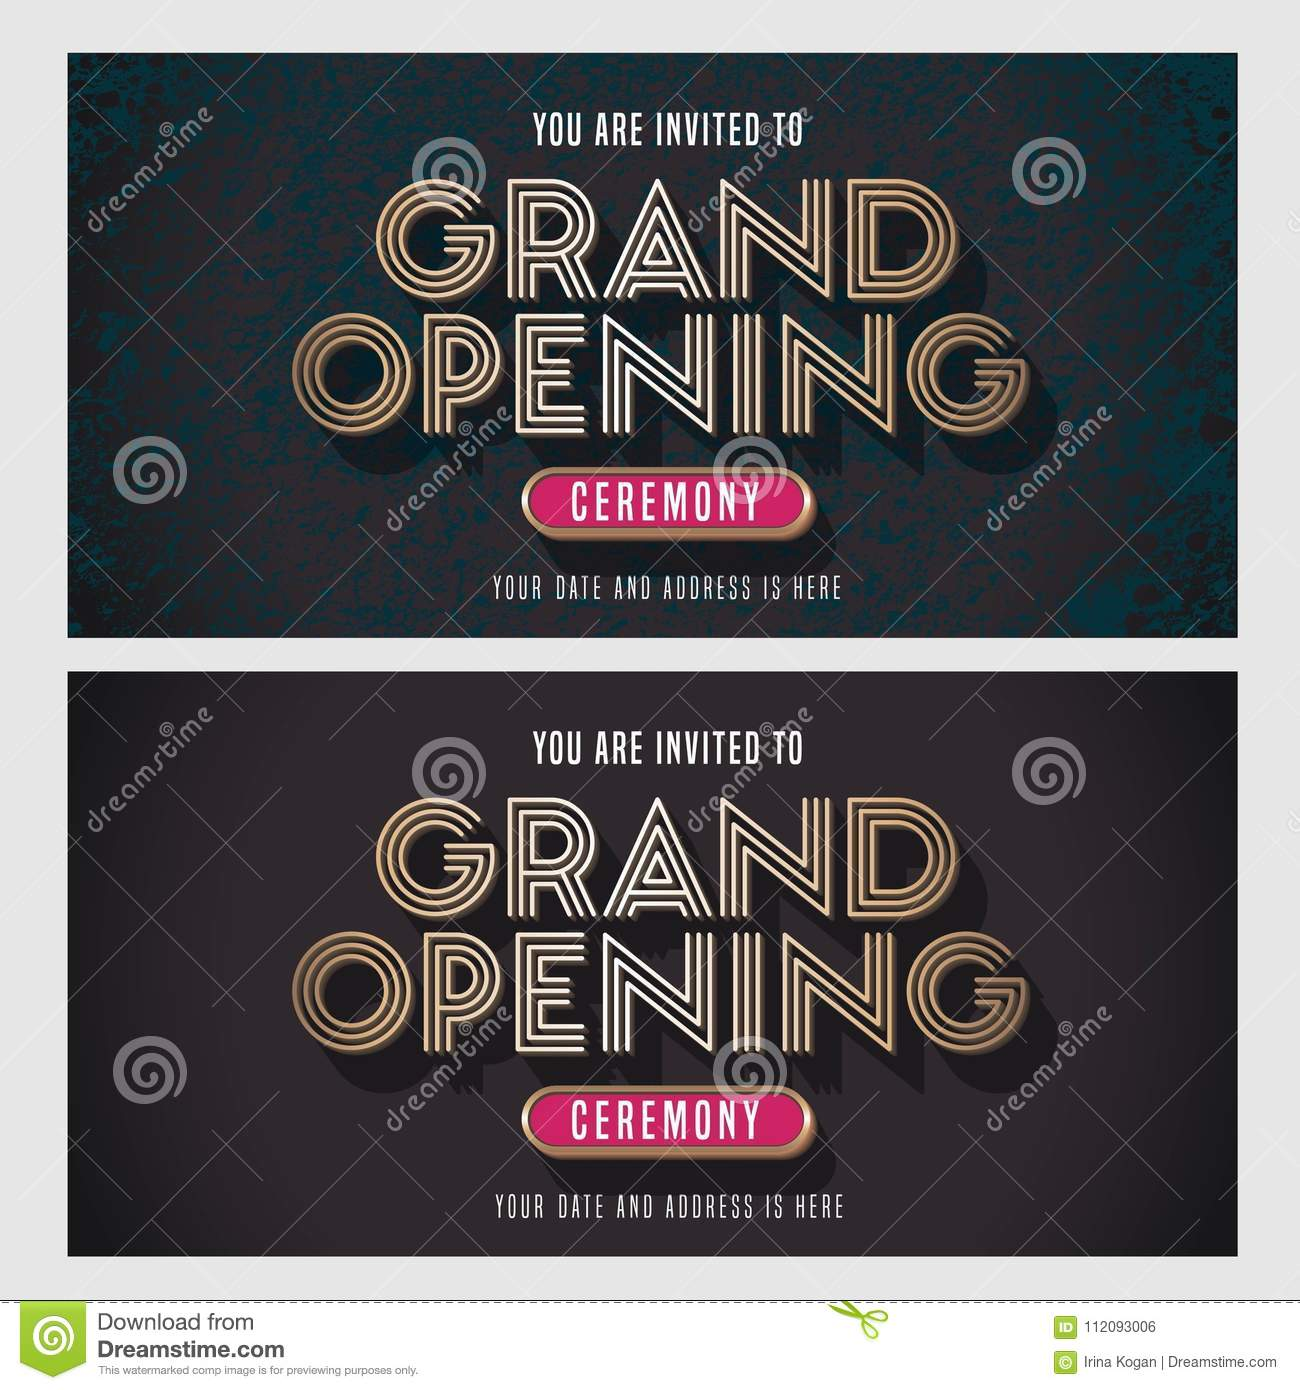 grand opening vector banner illustration